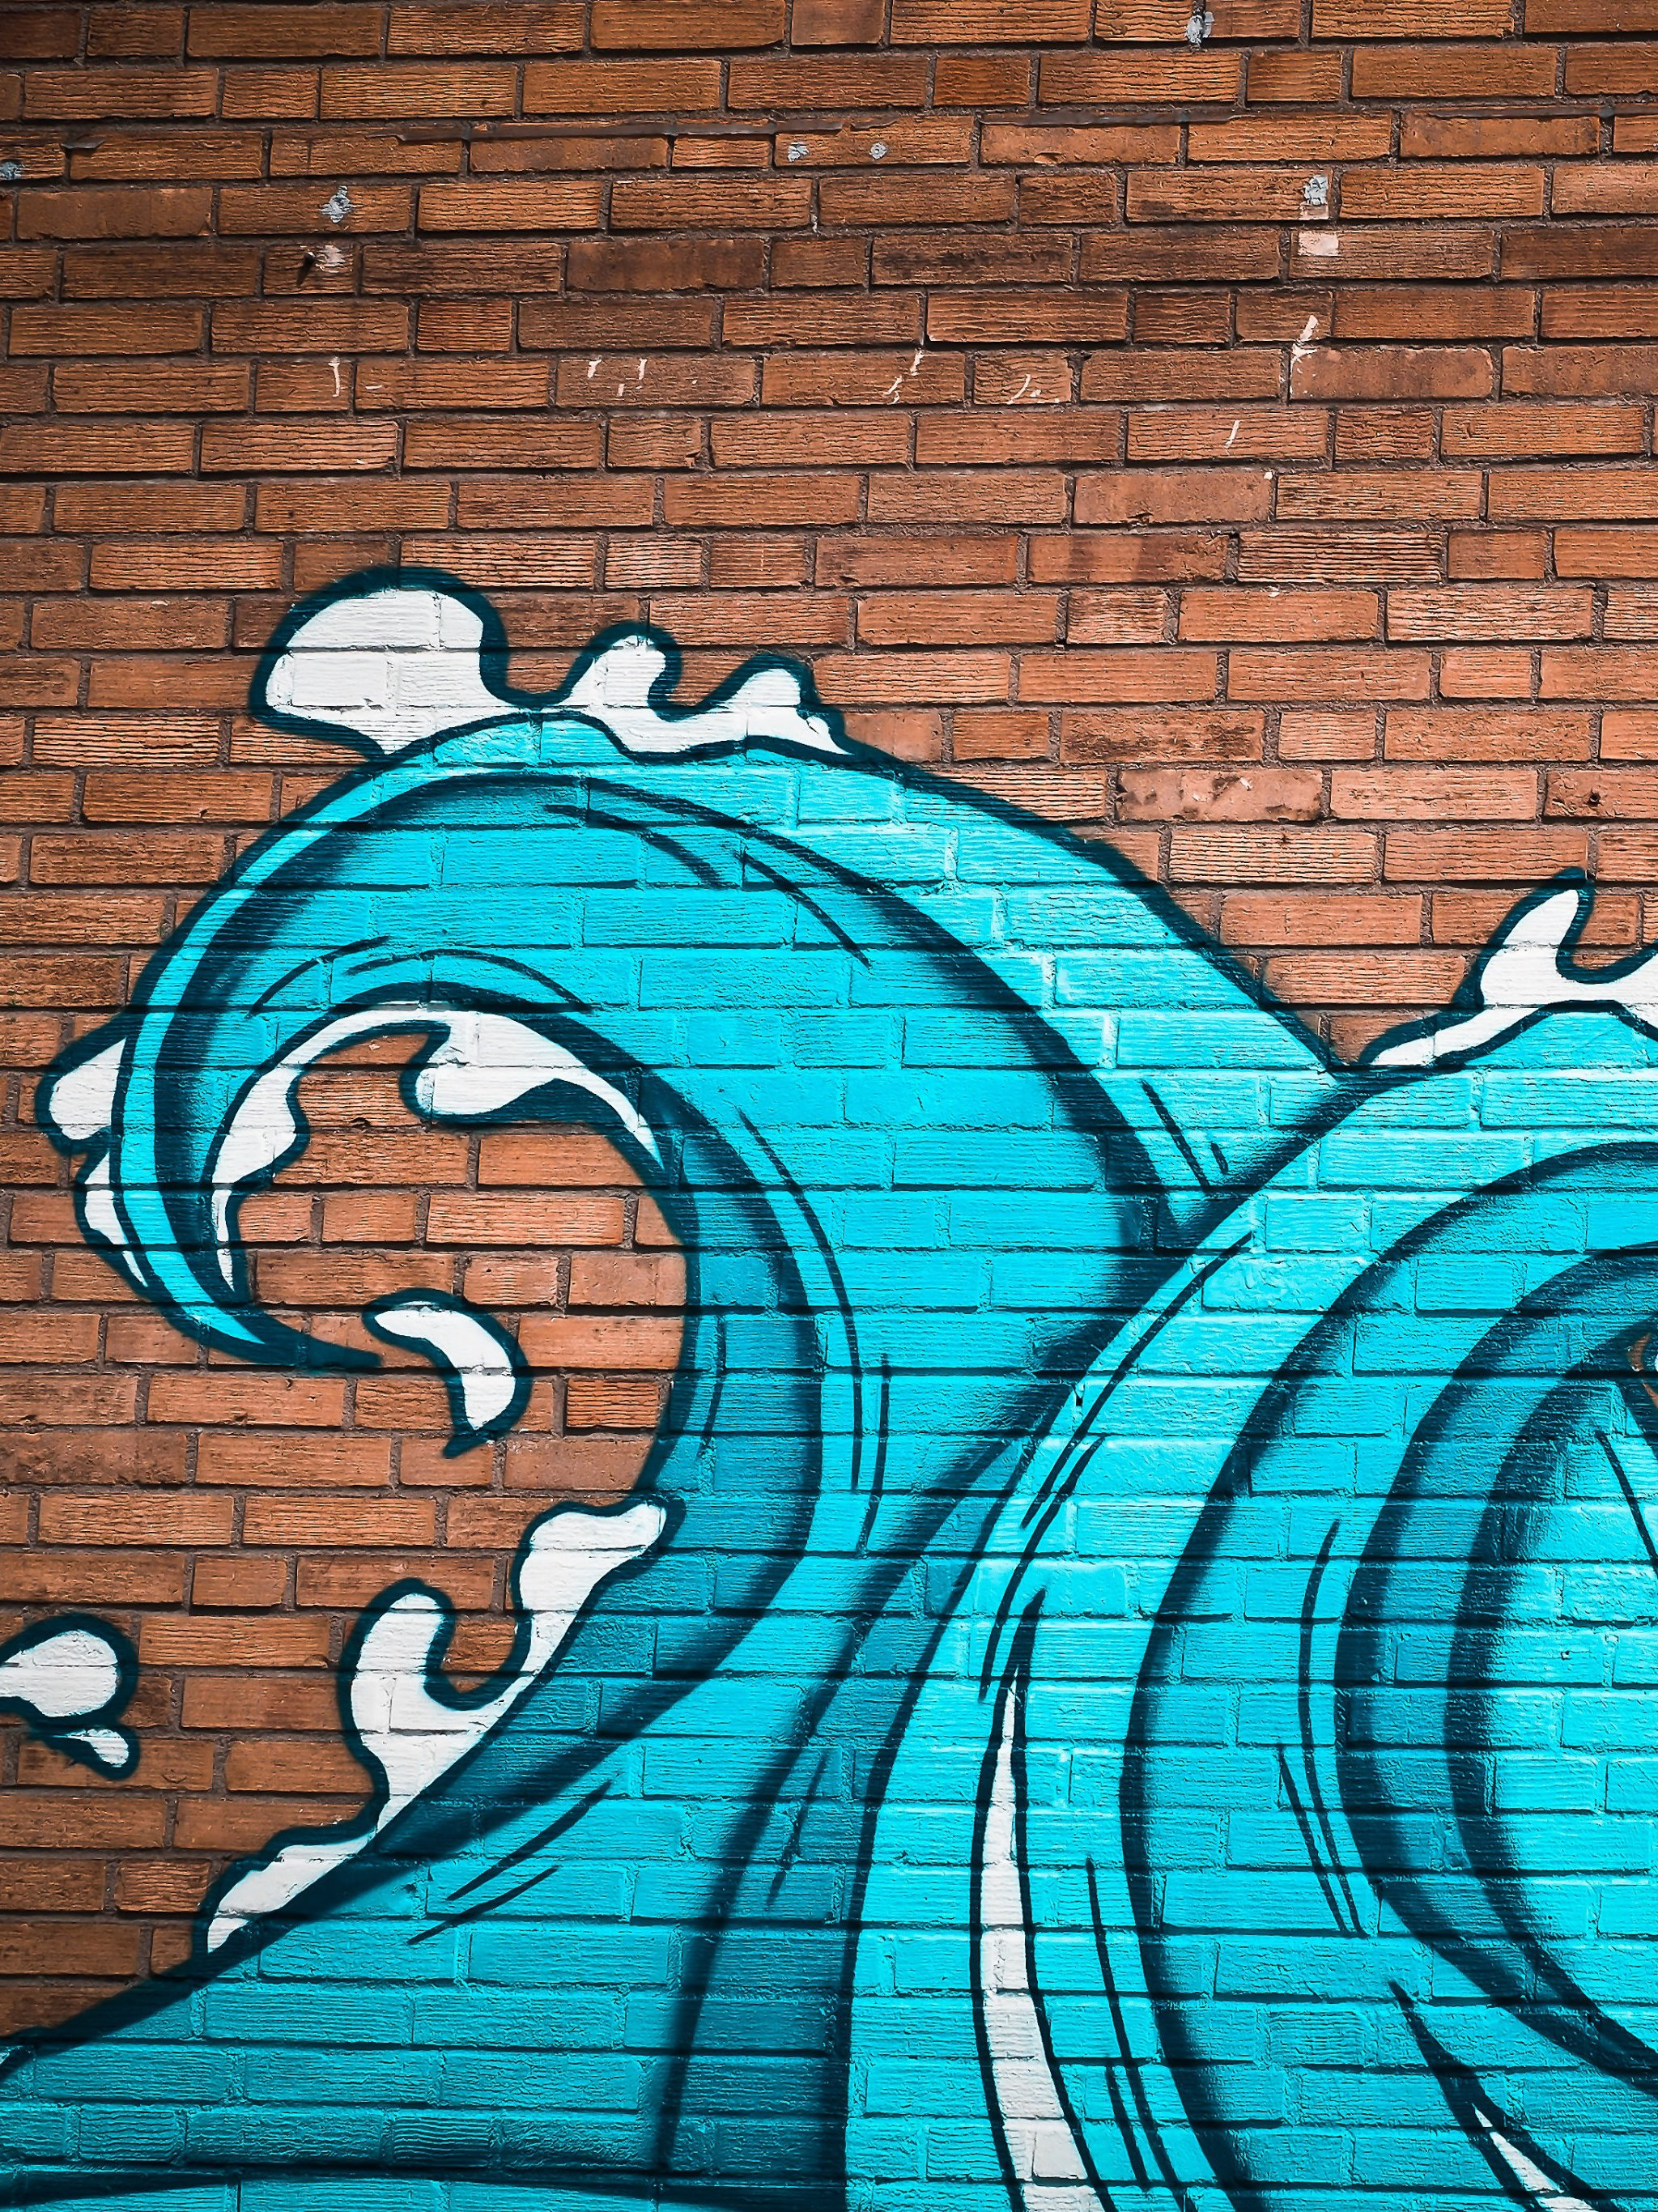 Ocean Waves Street Art Wallpaper